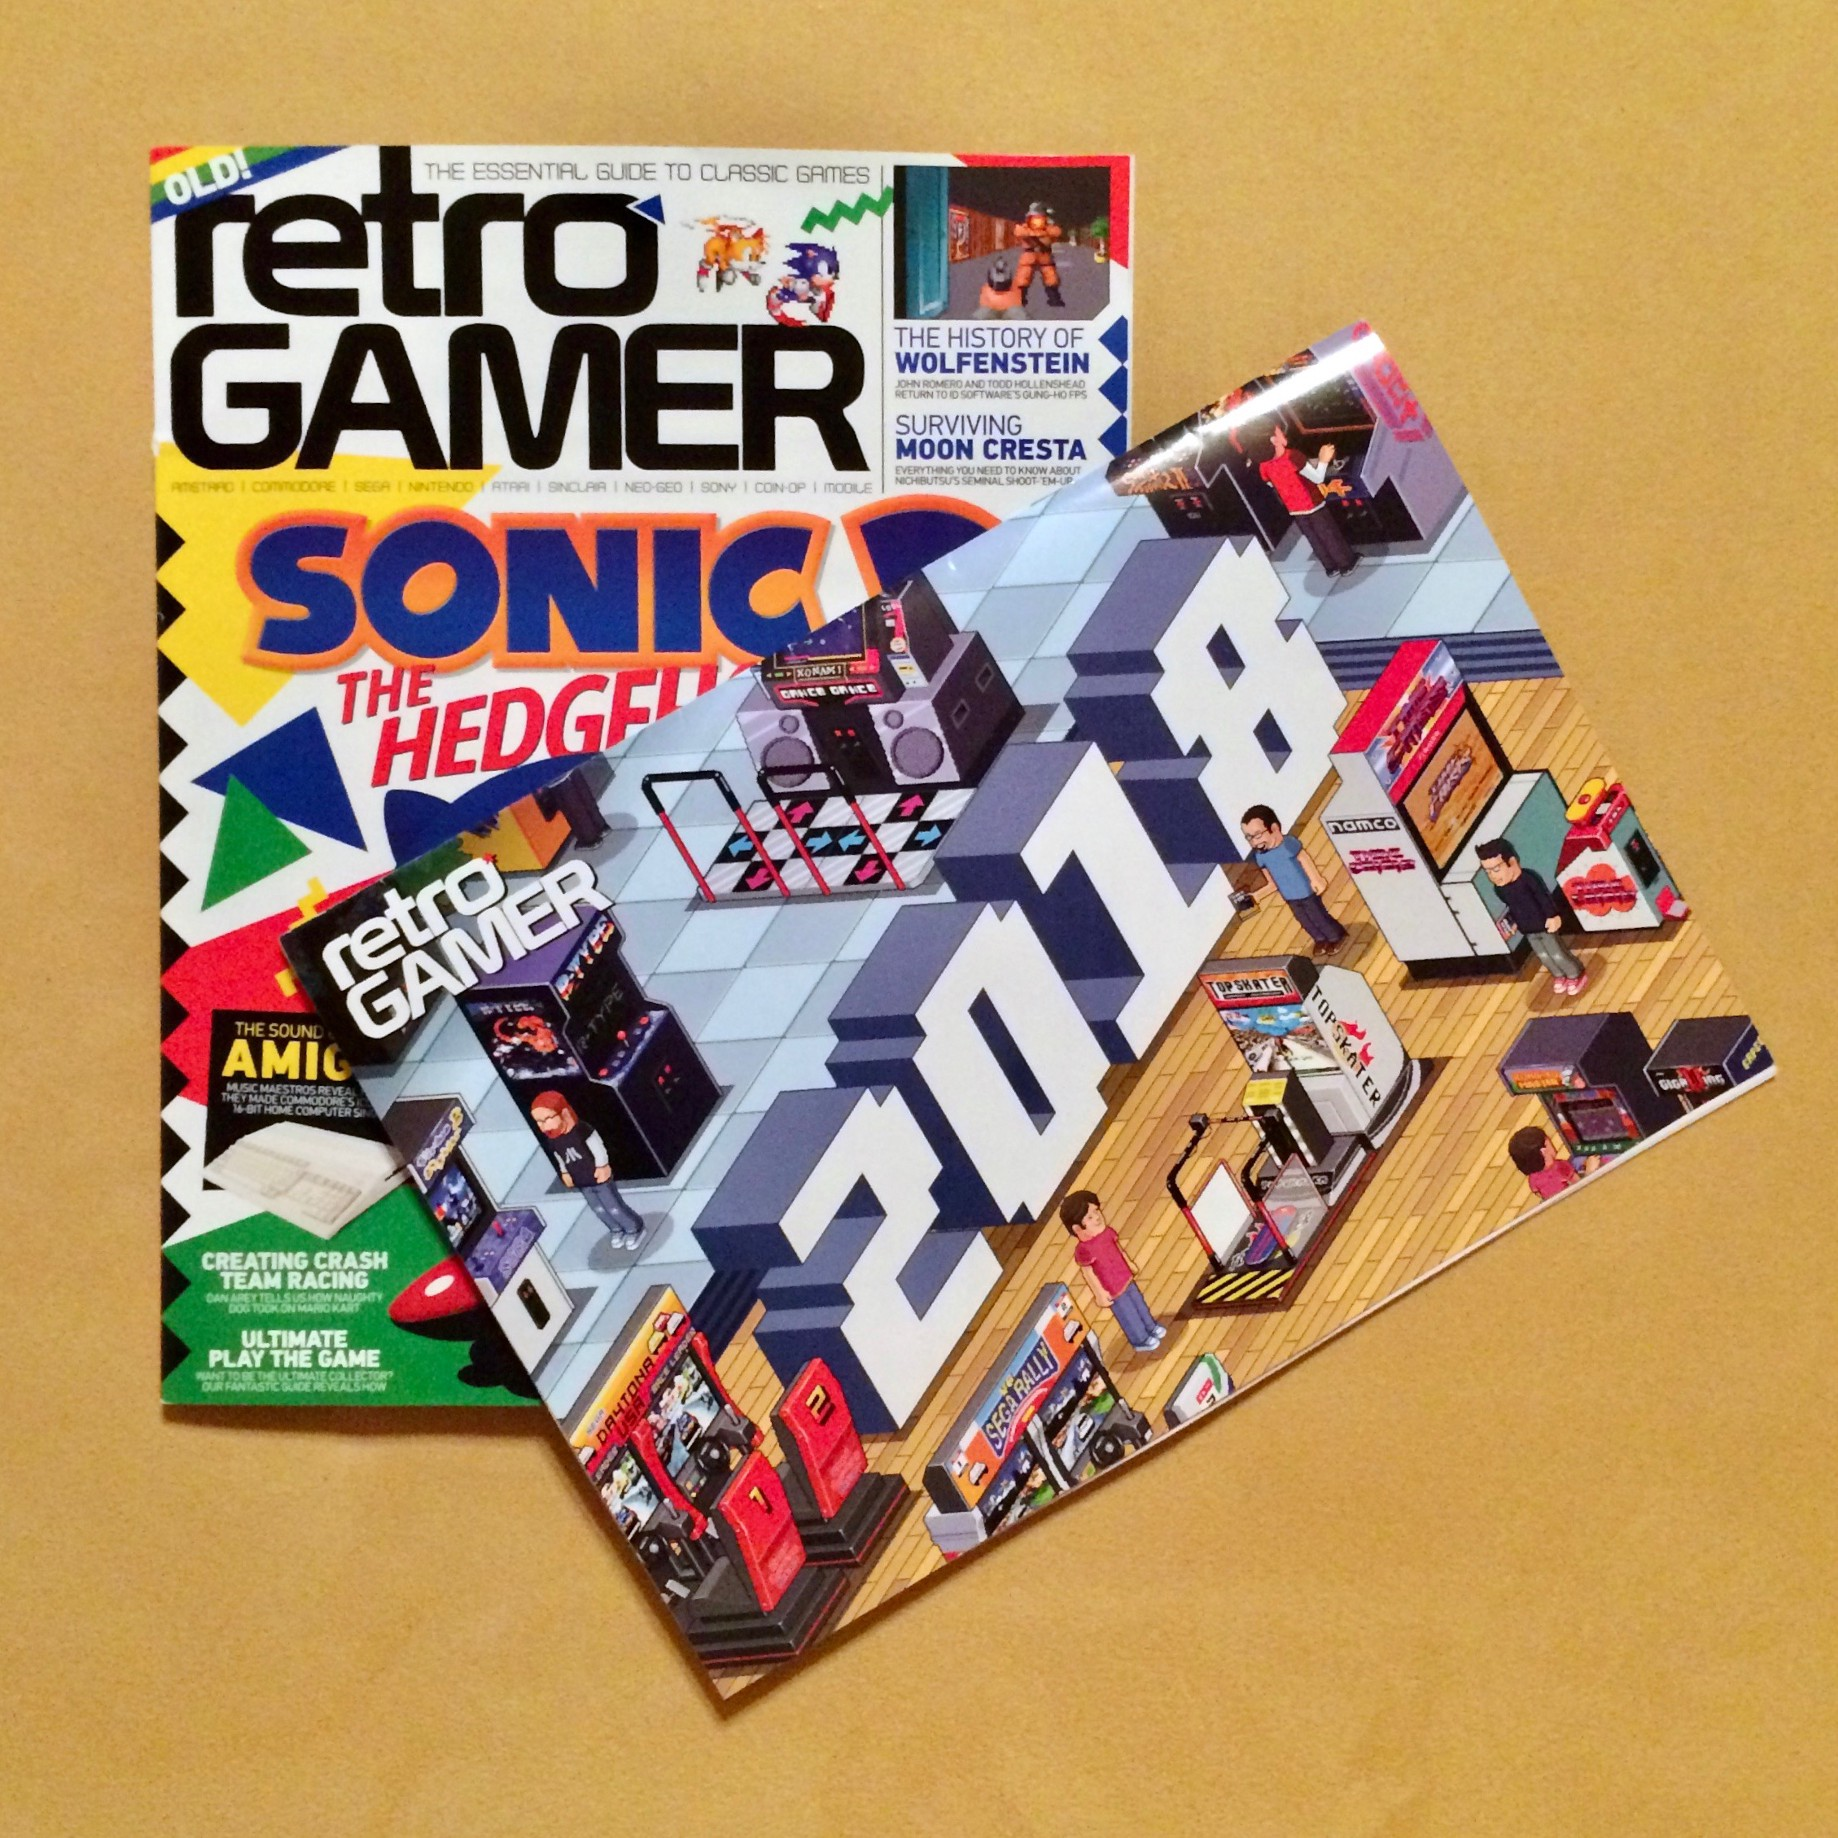 Retro Gamer 2018 Calendar - Retronator Magazine - Medium